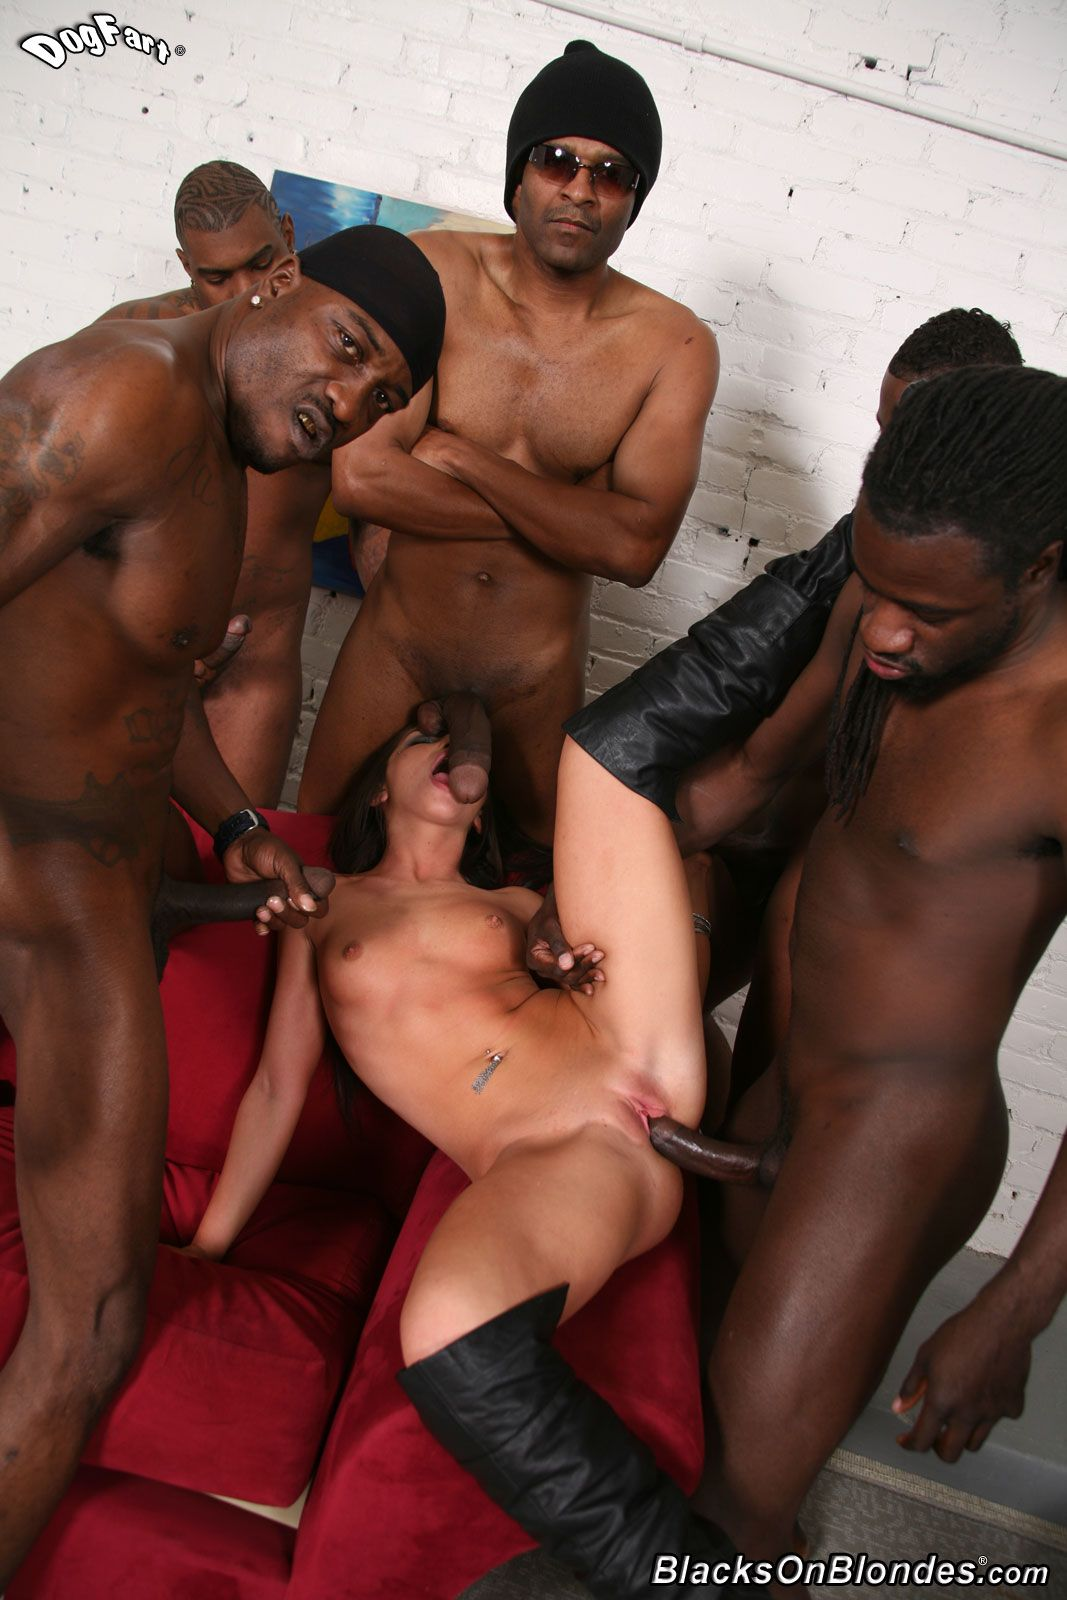 The holes fucked on holiday Woman insatiable stallions